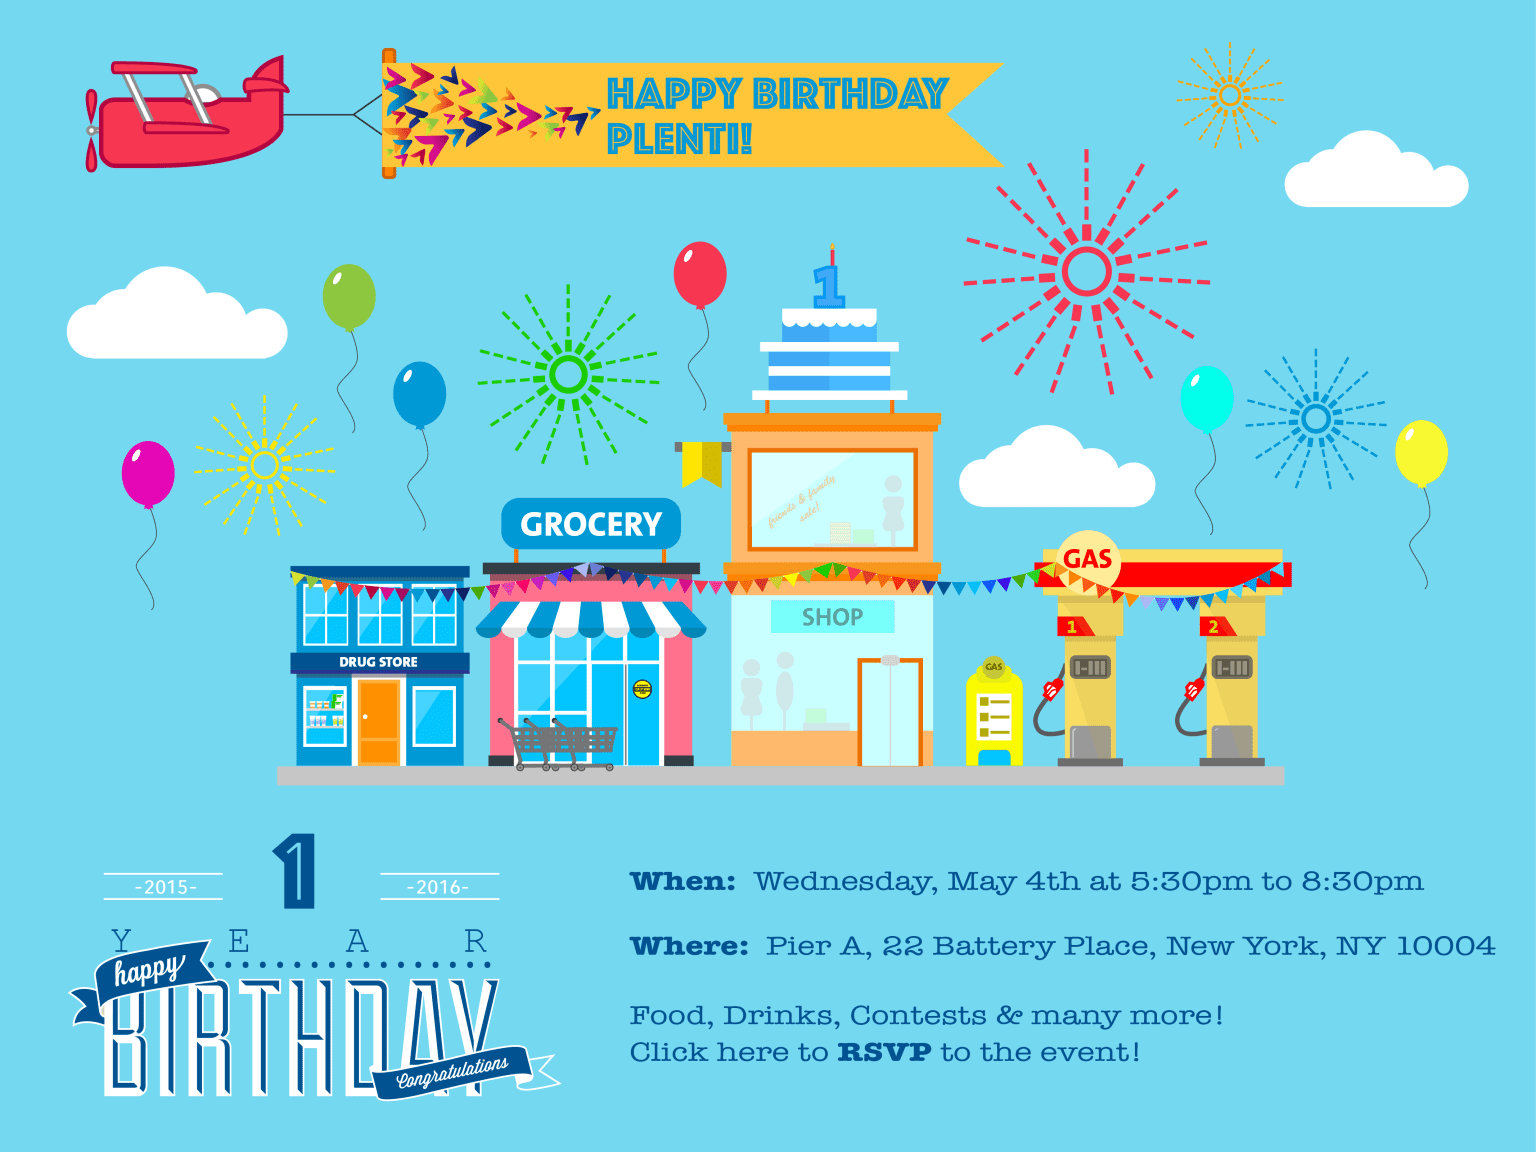 Visual Design for Plenti's Celebration